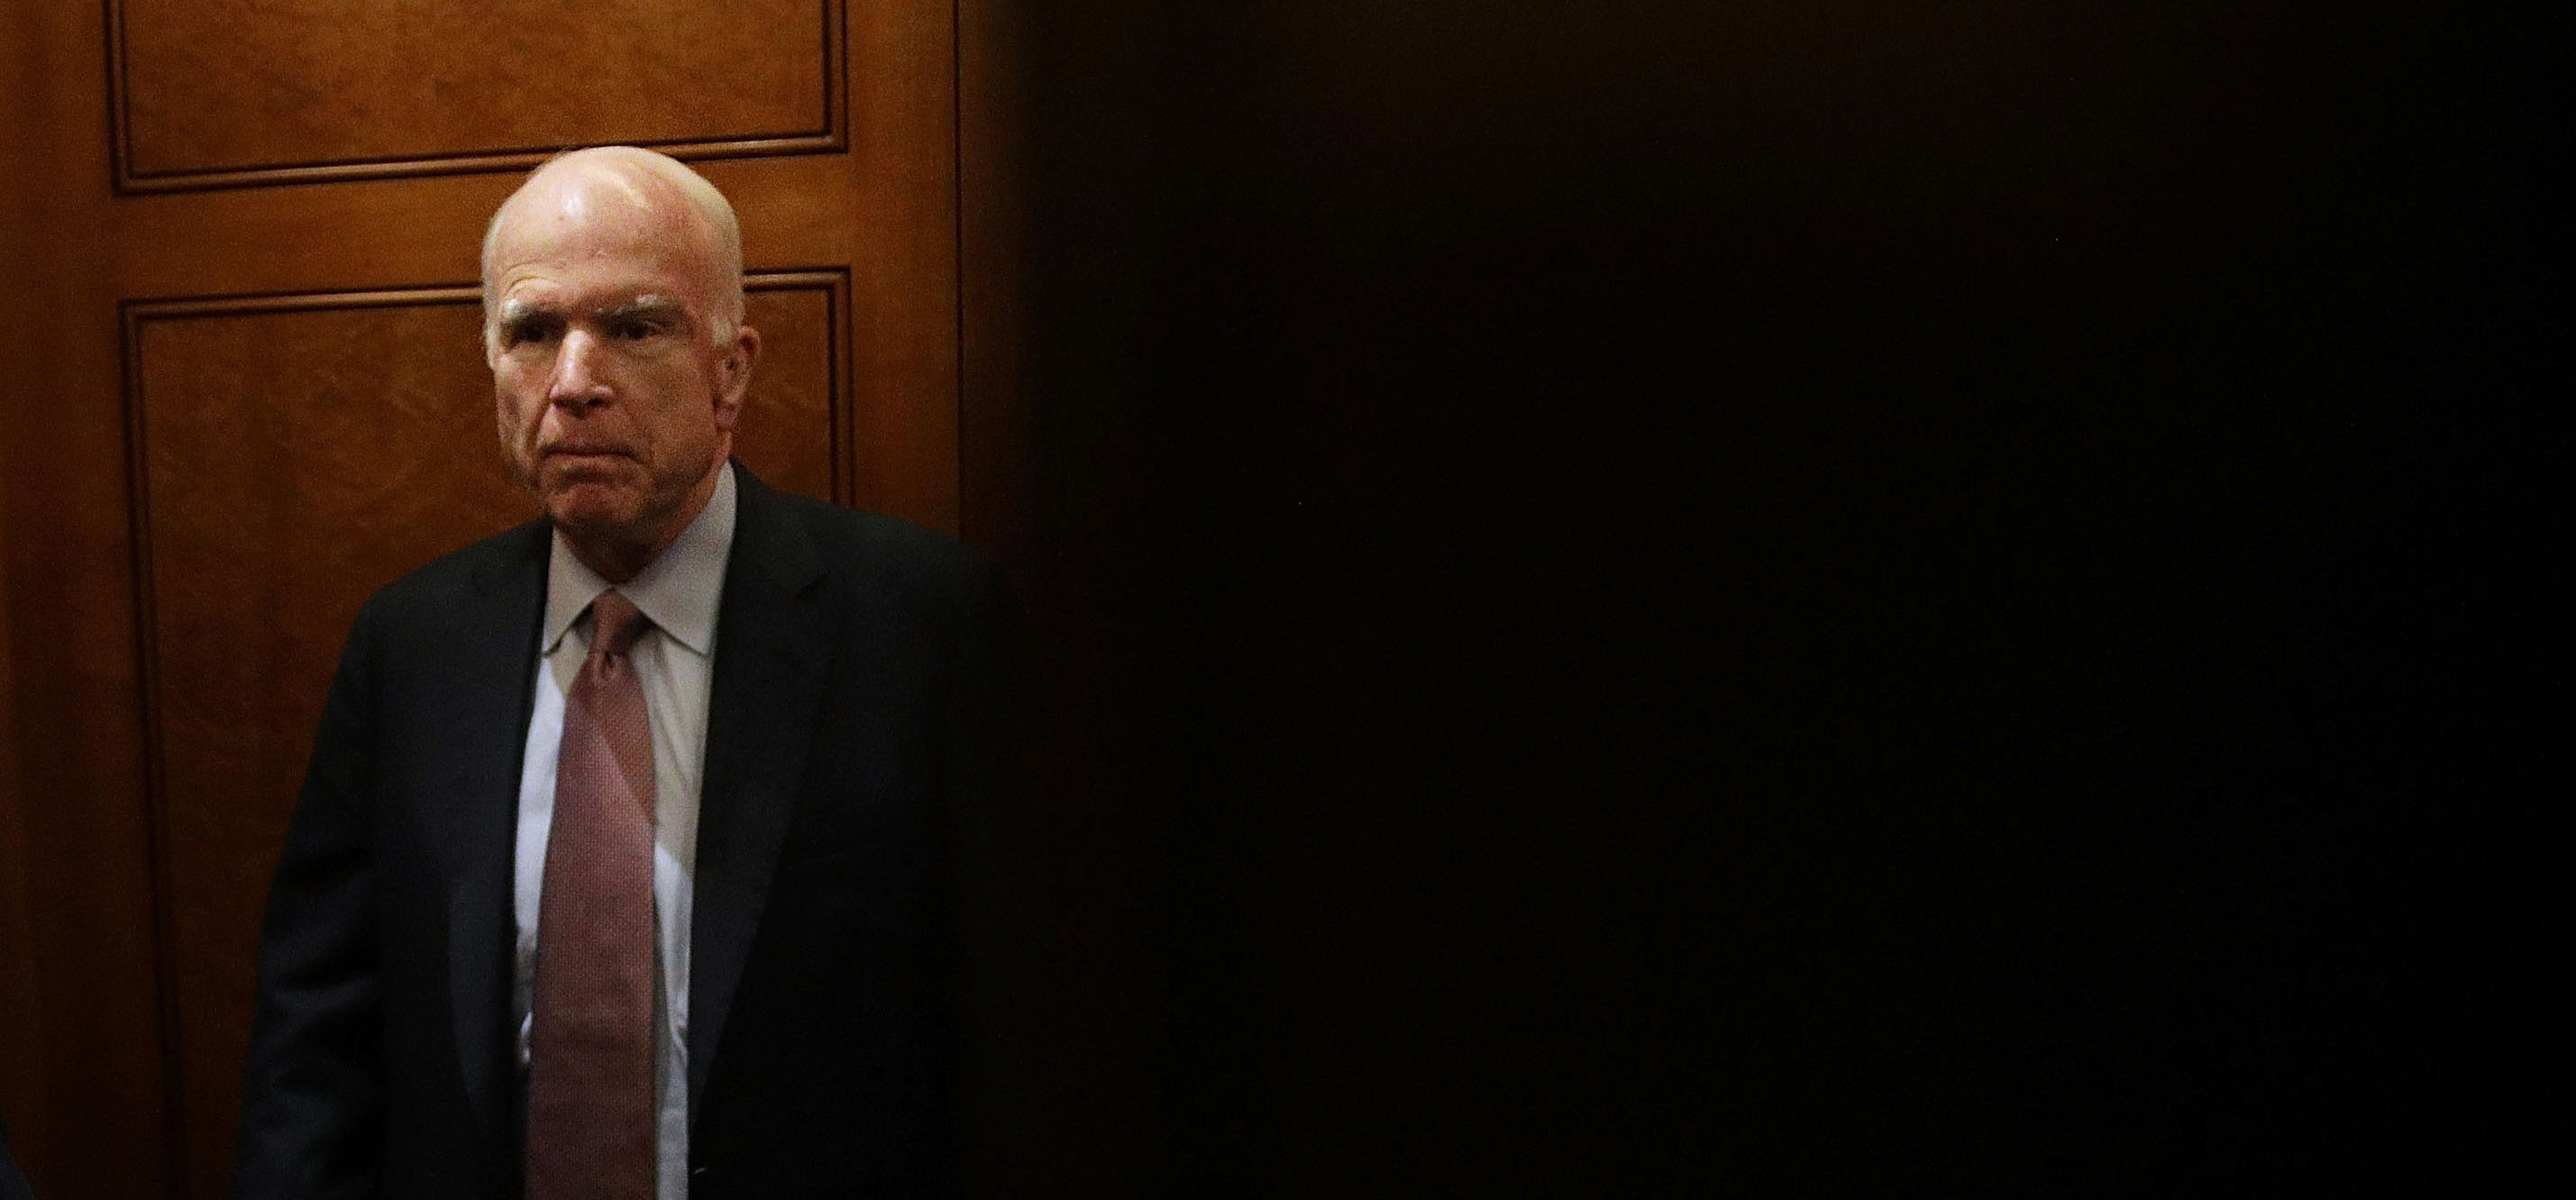 WASHINGTON, DC - SEPTEMBER 05: U.S. Sen. John McCain (R-AZ) leaves after a vote at the Capitol September 5, 2017 in Washington, DC. Congress is back from summer recess with a heavy legislative agenda in front of them. (Photo by Alex Wong/Getty Images)